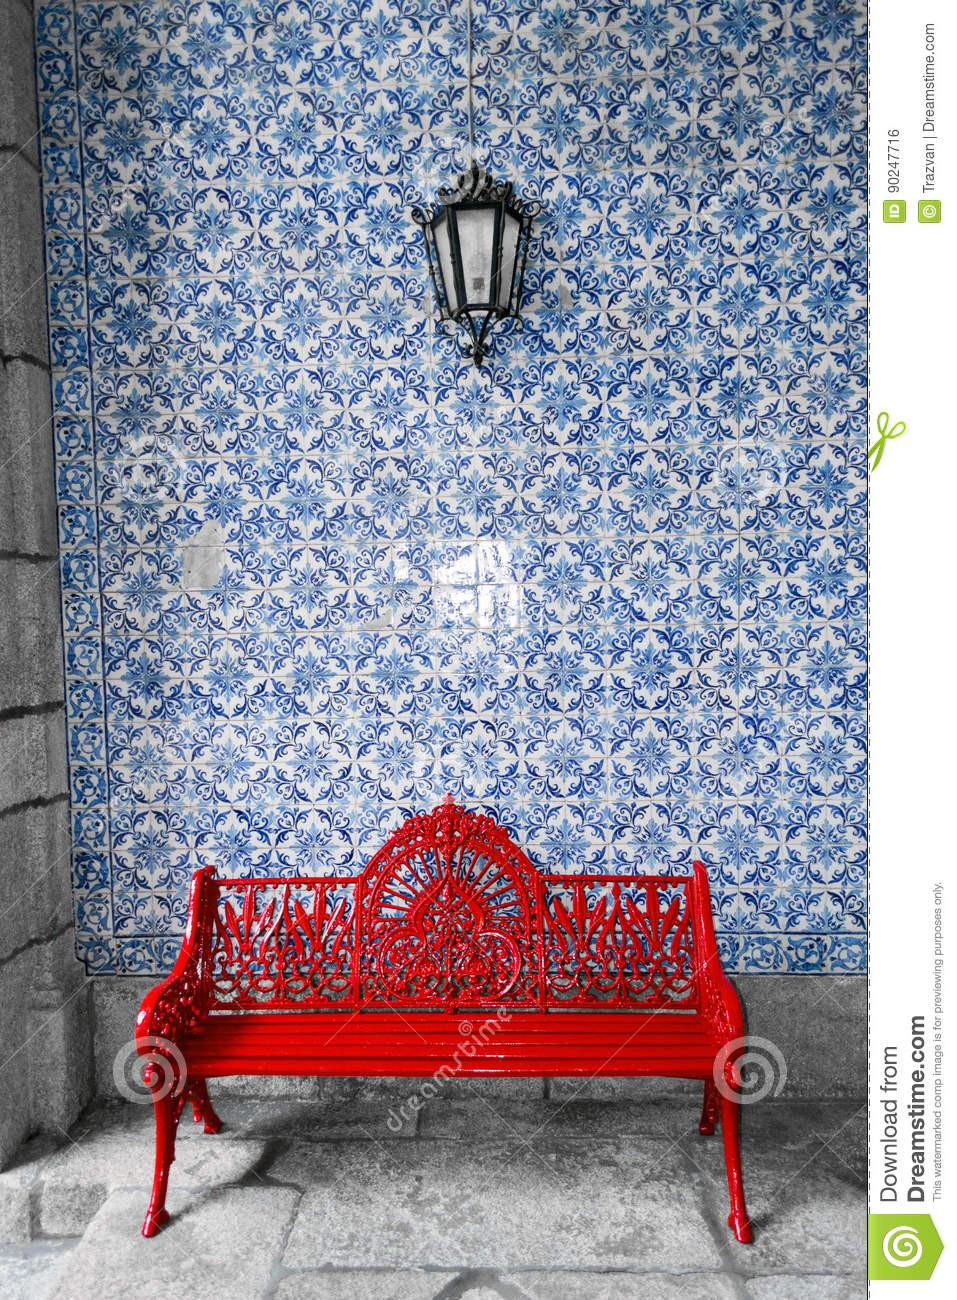 Wondrous Red Bench In Front Of Traditional Portuguese Azulejos Wall Spiritservingveterans Wood Chair Design Ideas Spiritservingveteransorg